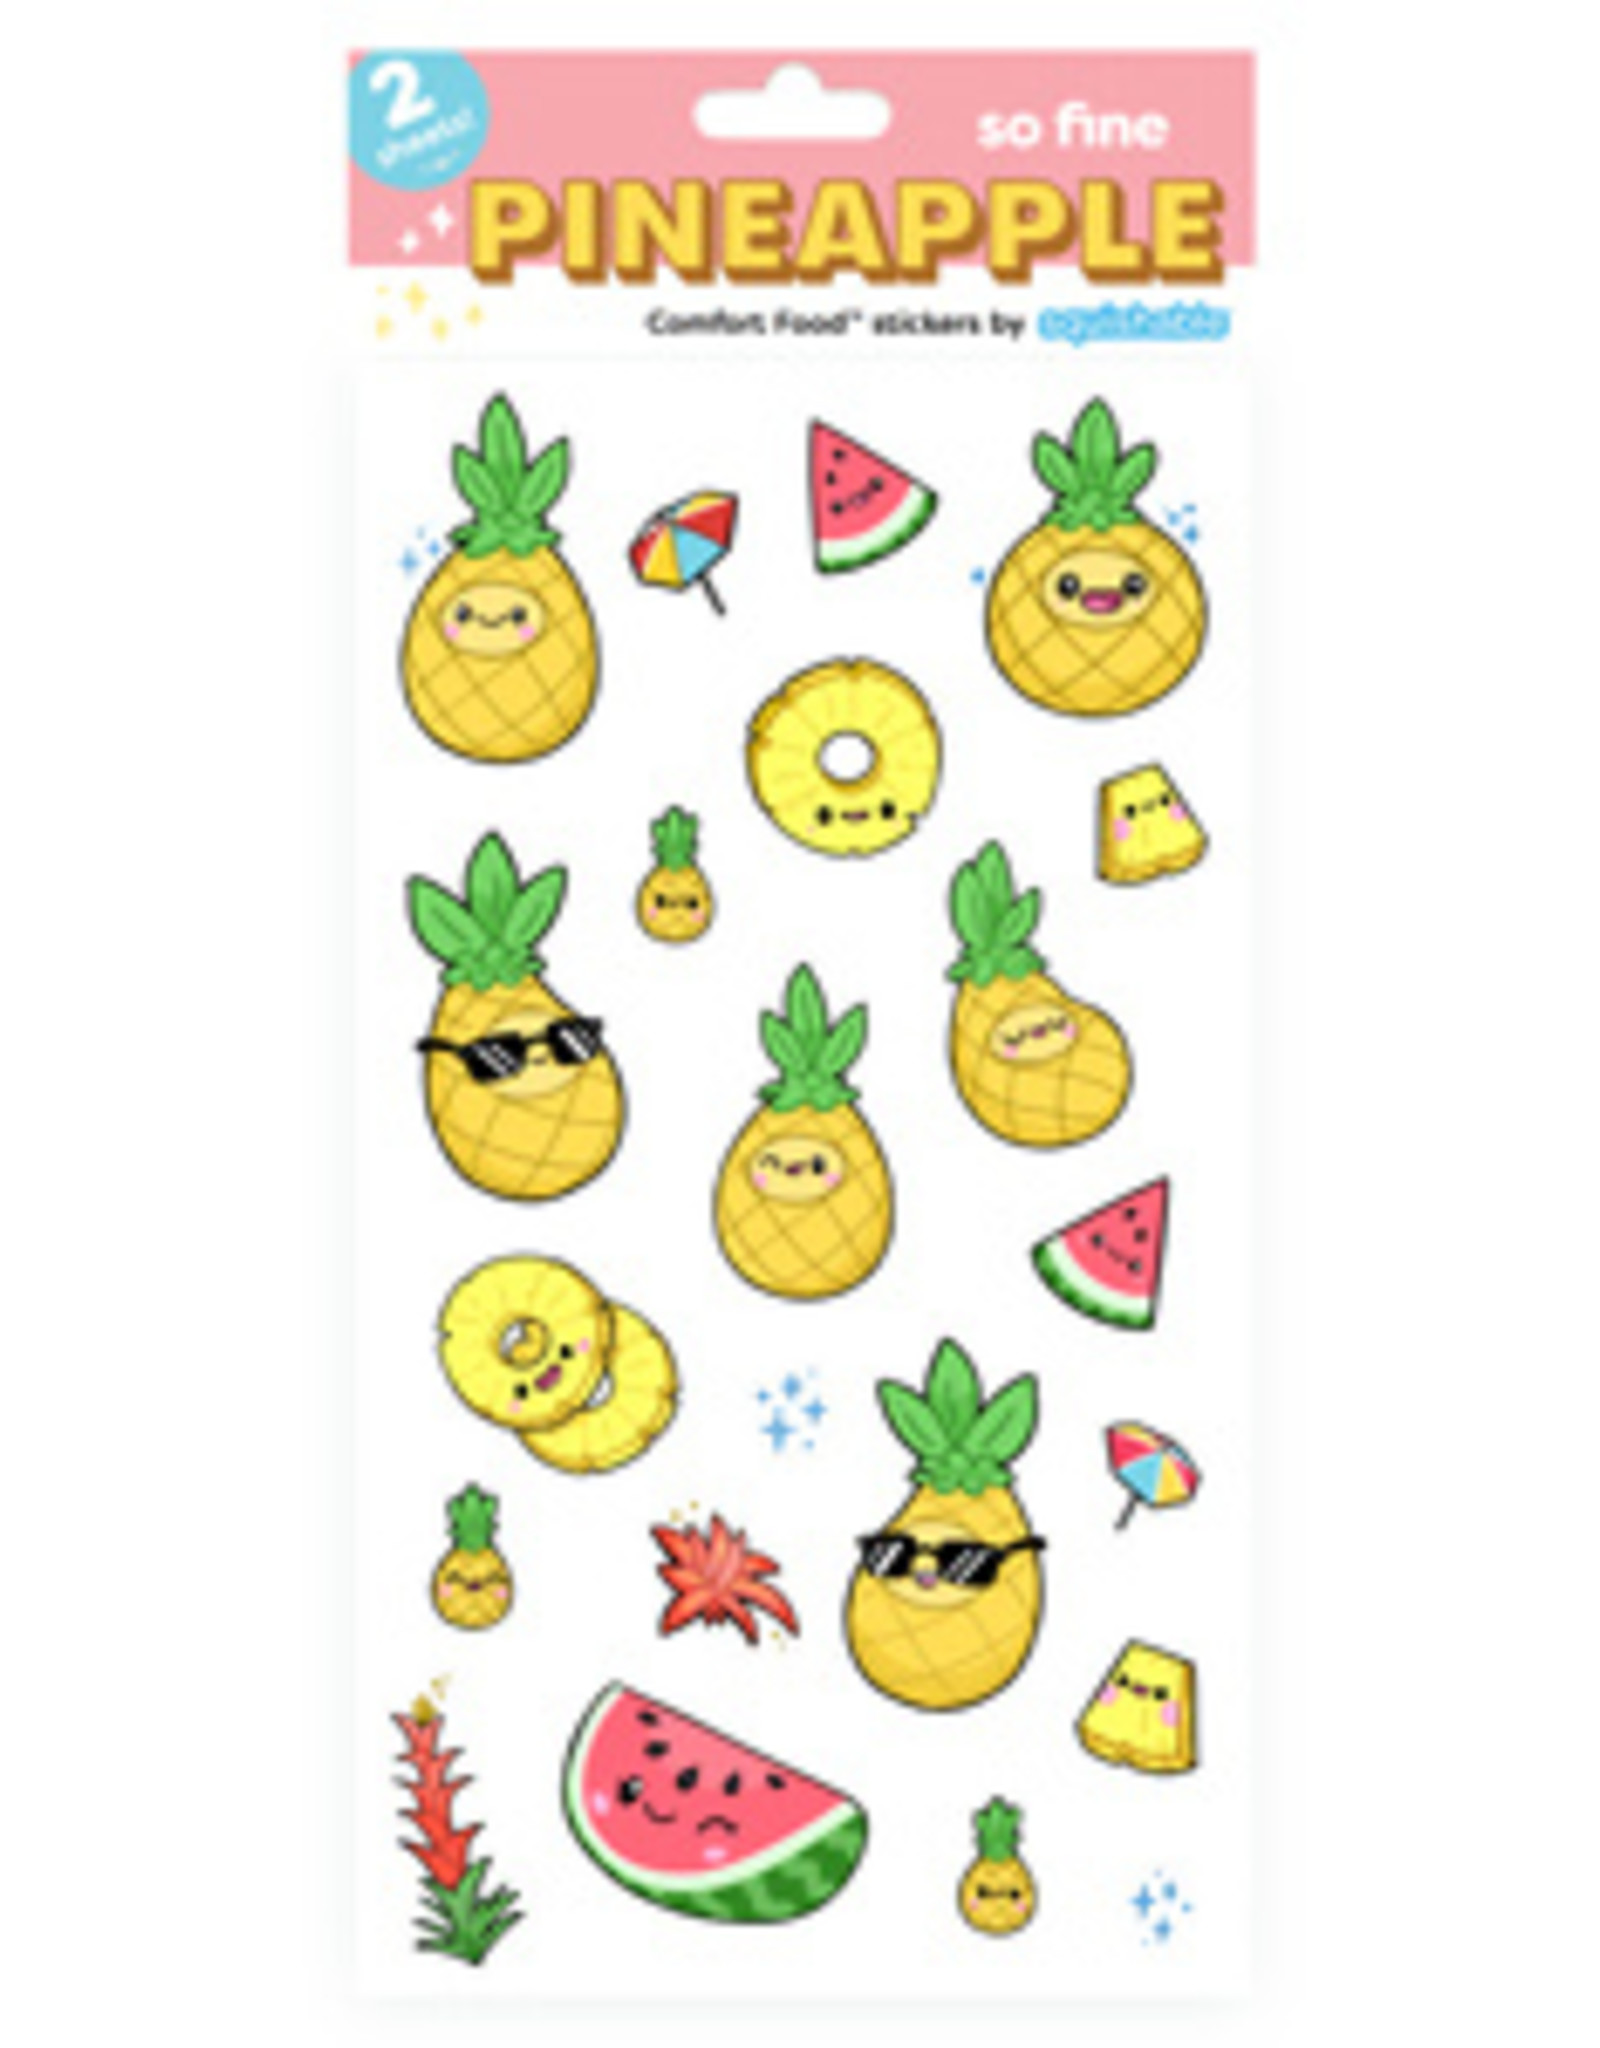 Squishable Pineapple Stickers